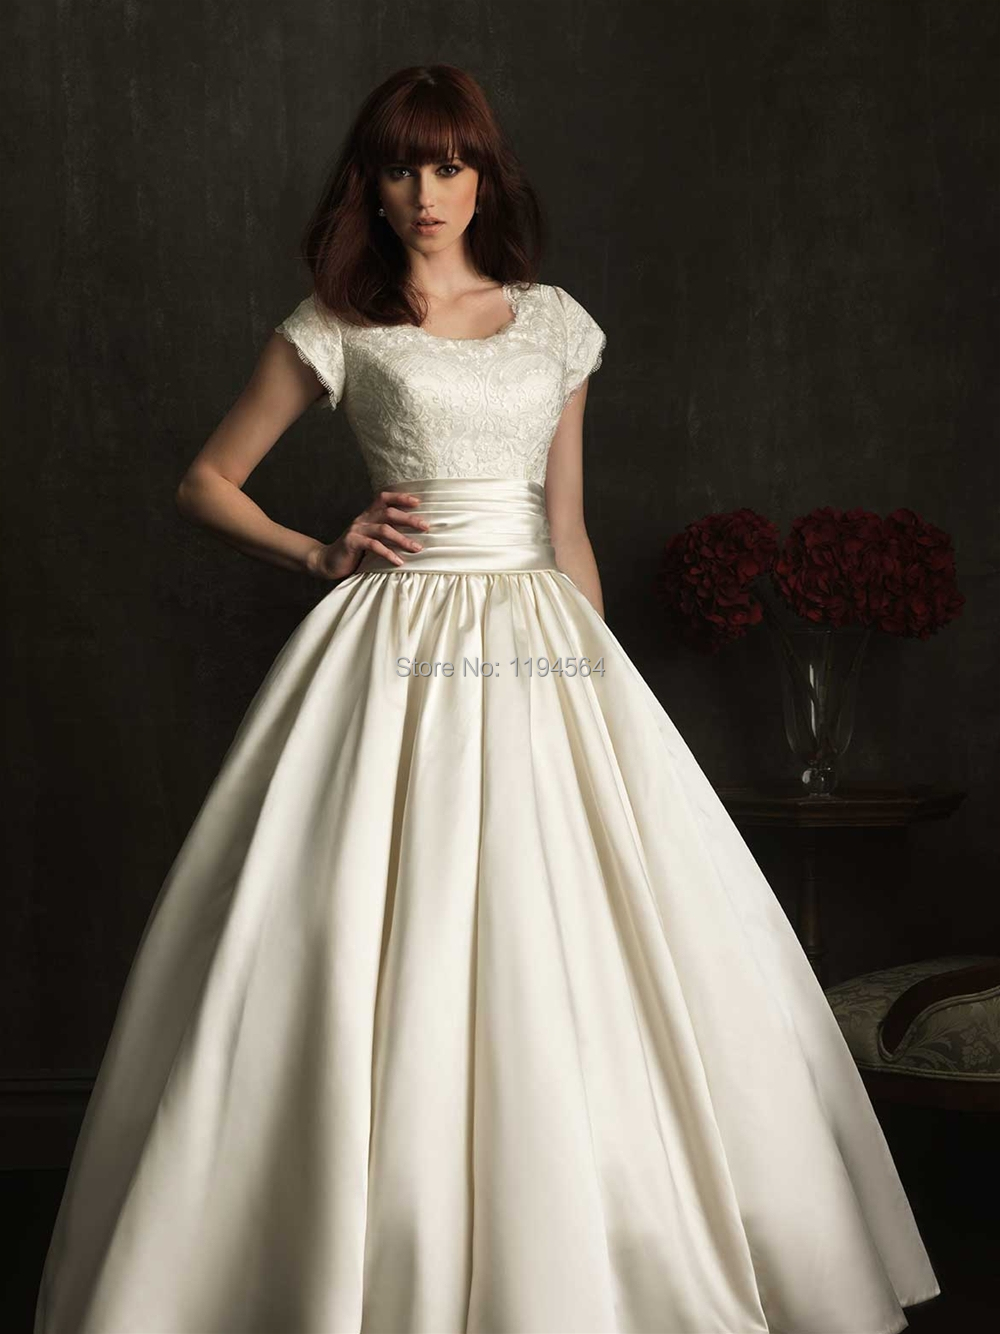 Modest high back wedding dresses 2015 bridal ball gowns for Modest wedding dresses under 500